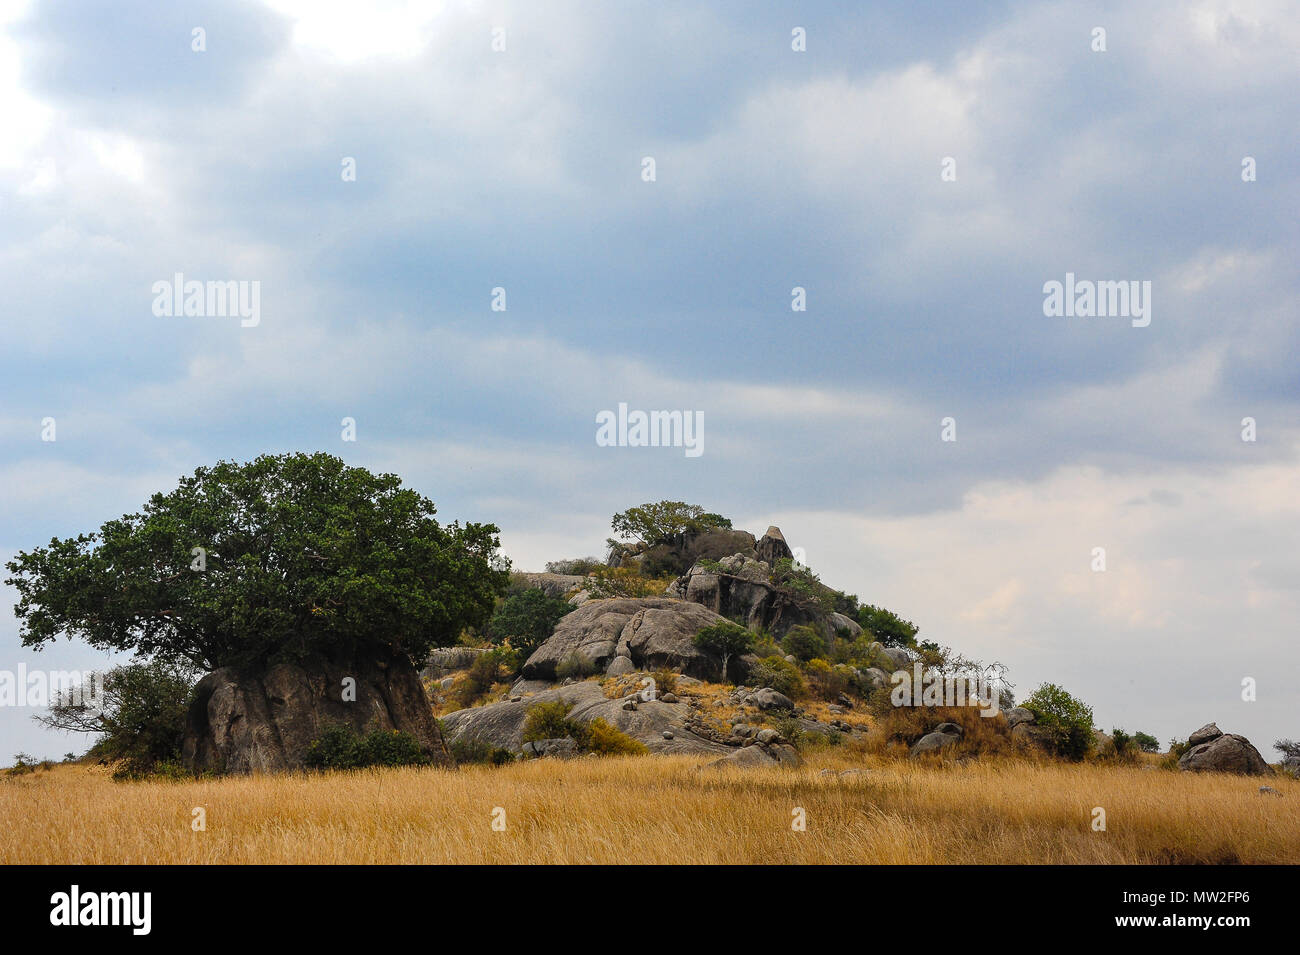 Beautiful Serengeti landscape. A rocky kopje stands in golden grassland with grey storm clouds overhead - Stock Image